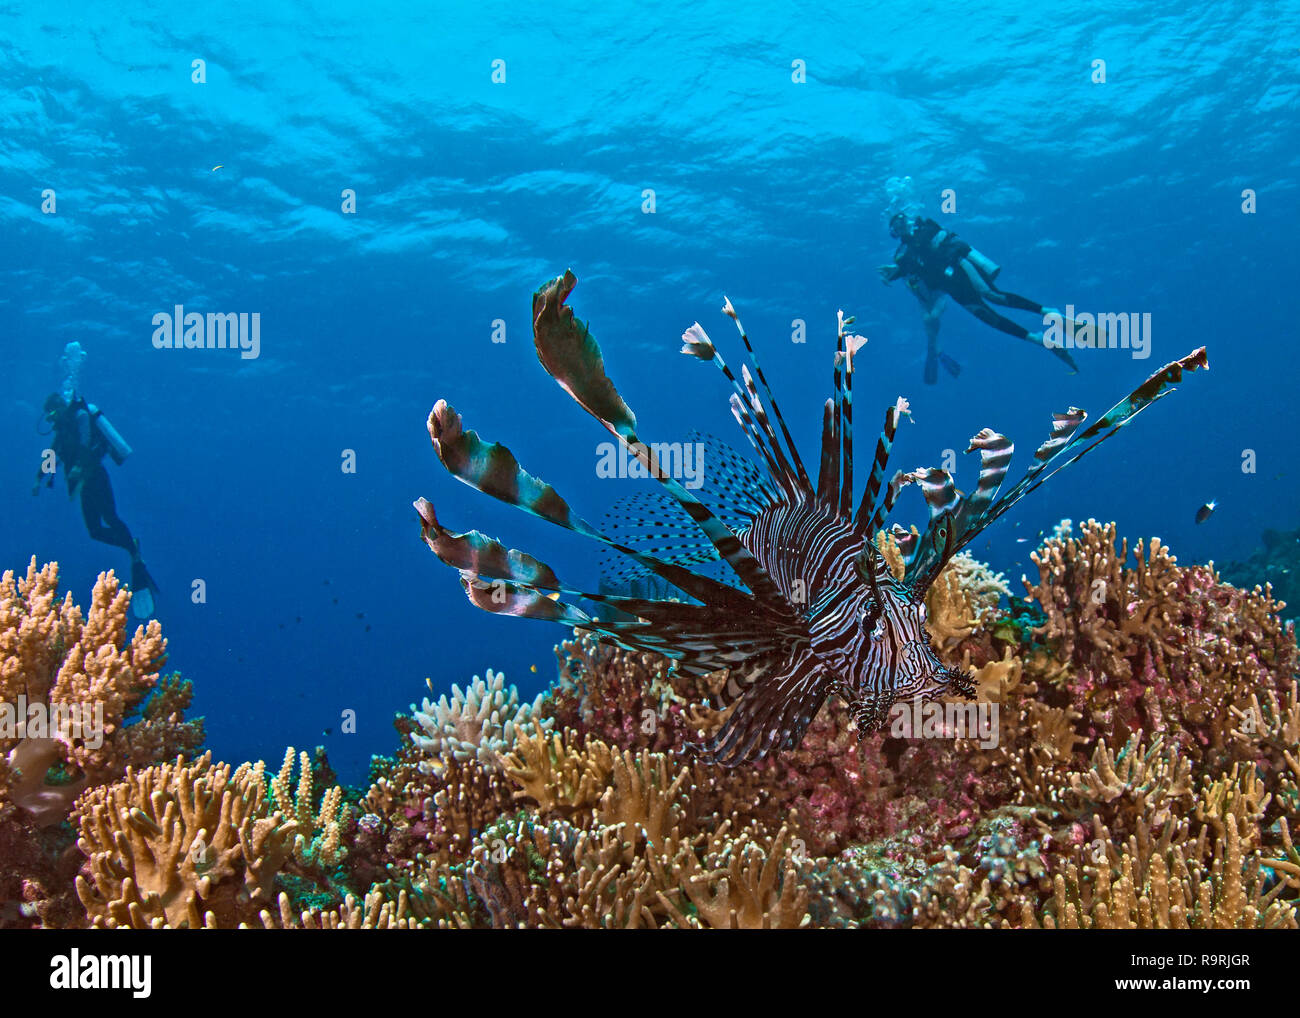 Close focus wide-angle image of lionfish on coral reef with scuba divers in blue water background. Spratly Islands, South China Sea. Stock Photo